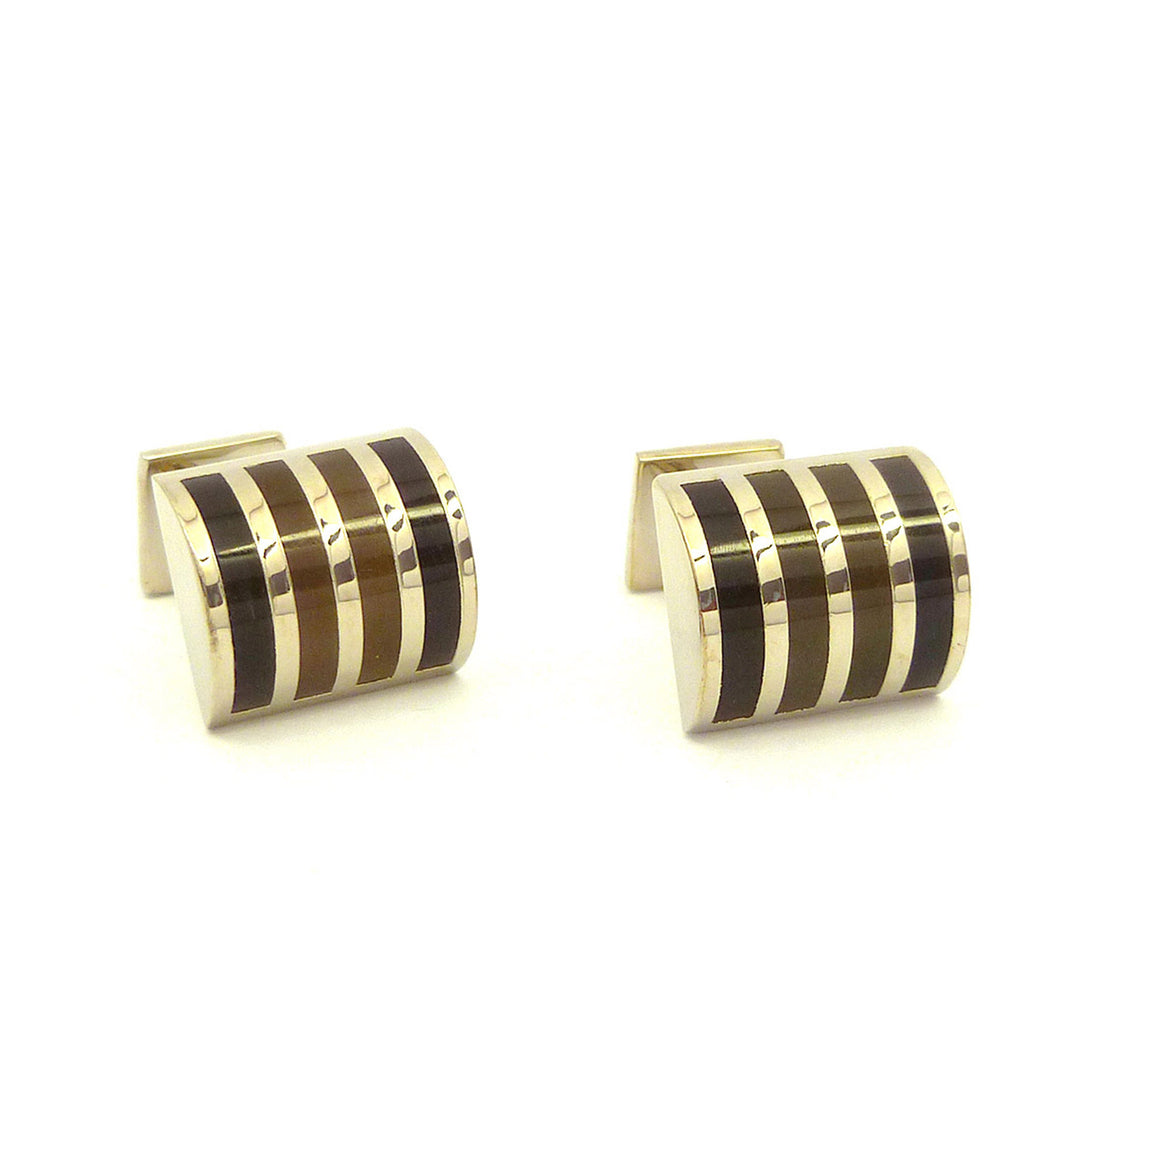 Wild Links - Silver Brown Shades Vertical Stripes Cufflinks